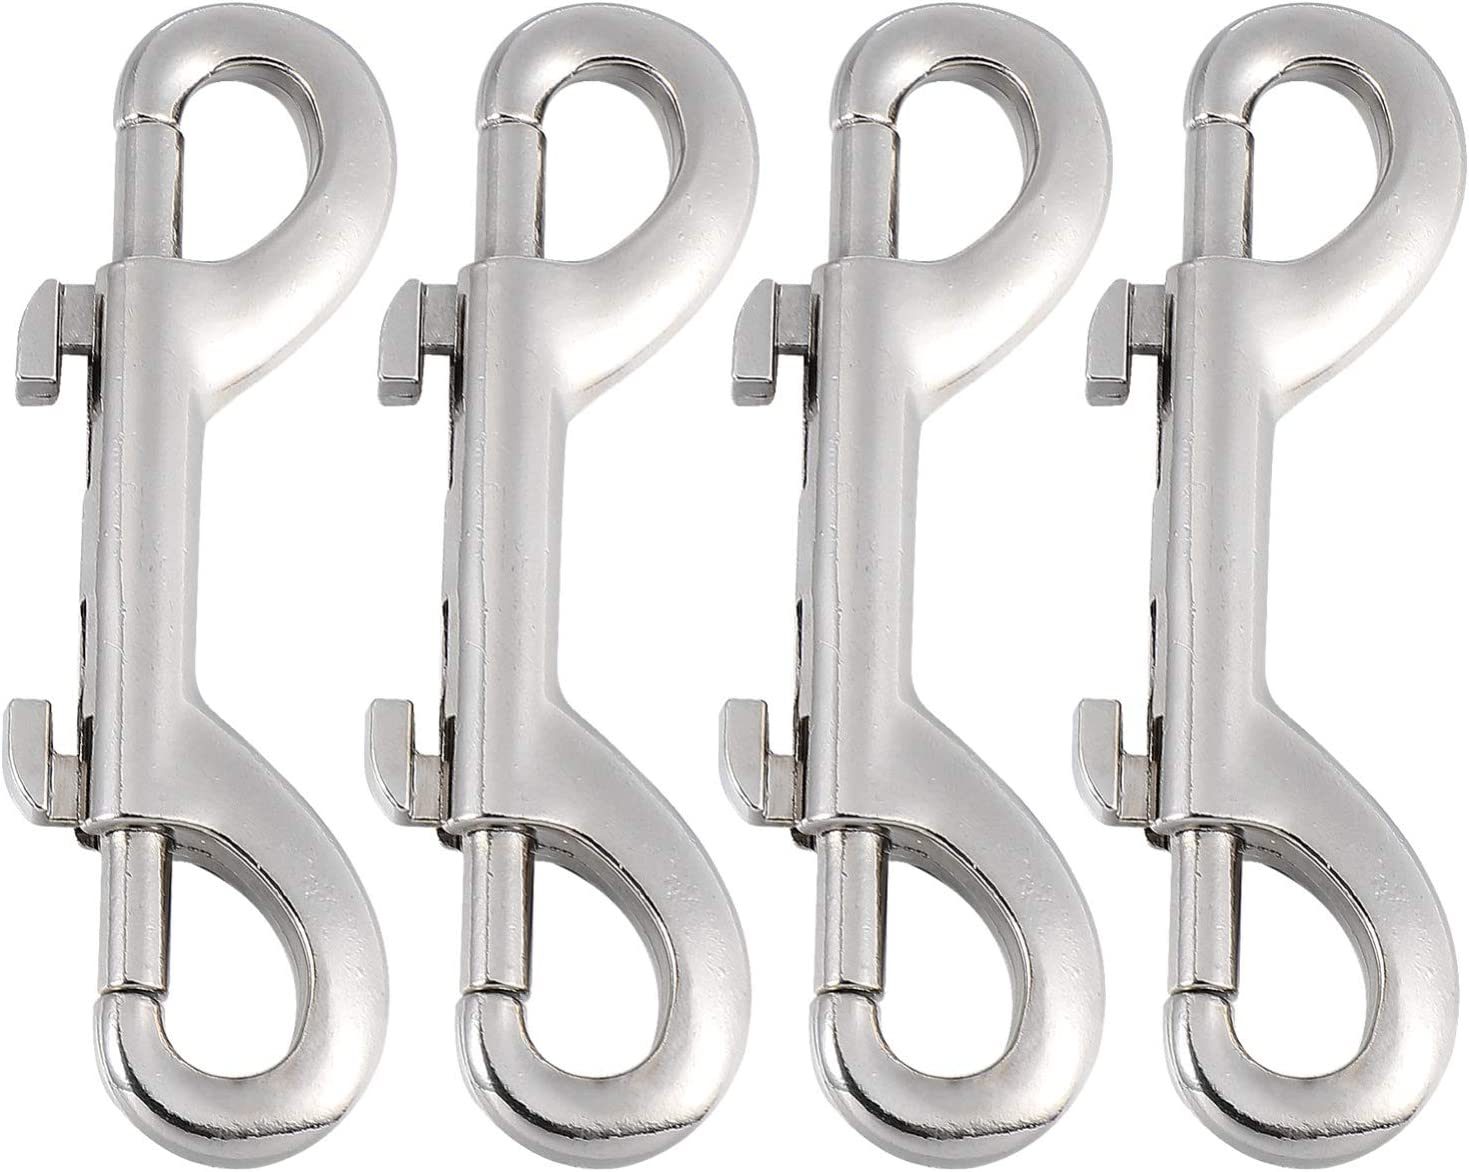 TEHAUX 4 Free shipping Selling Pcs Double Ended Bolt Trigger Marine Grade Hook Me Snap